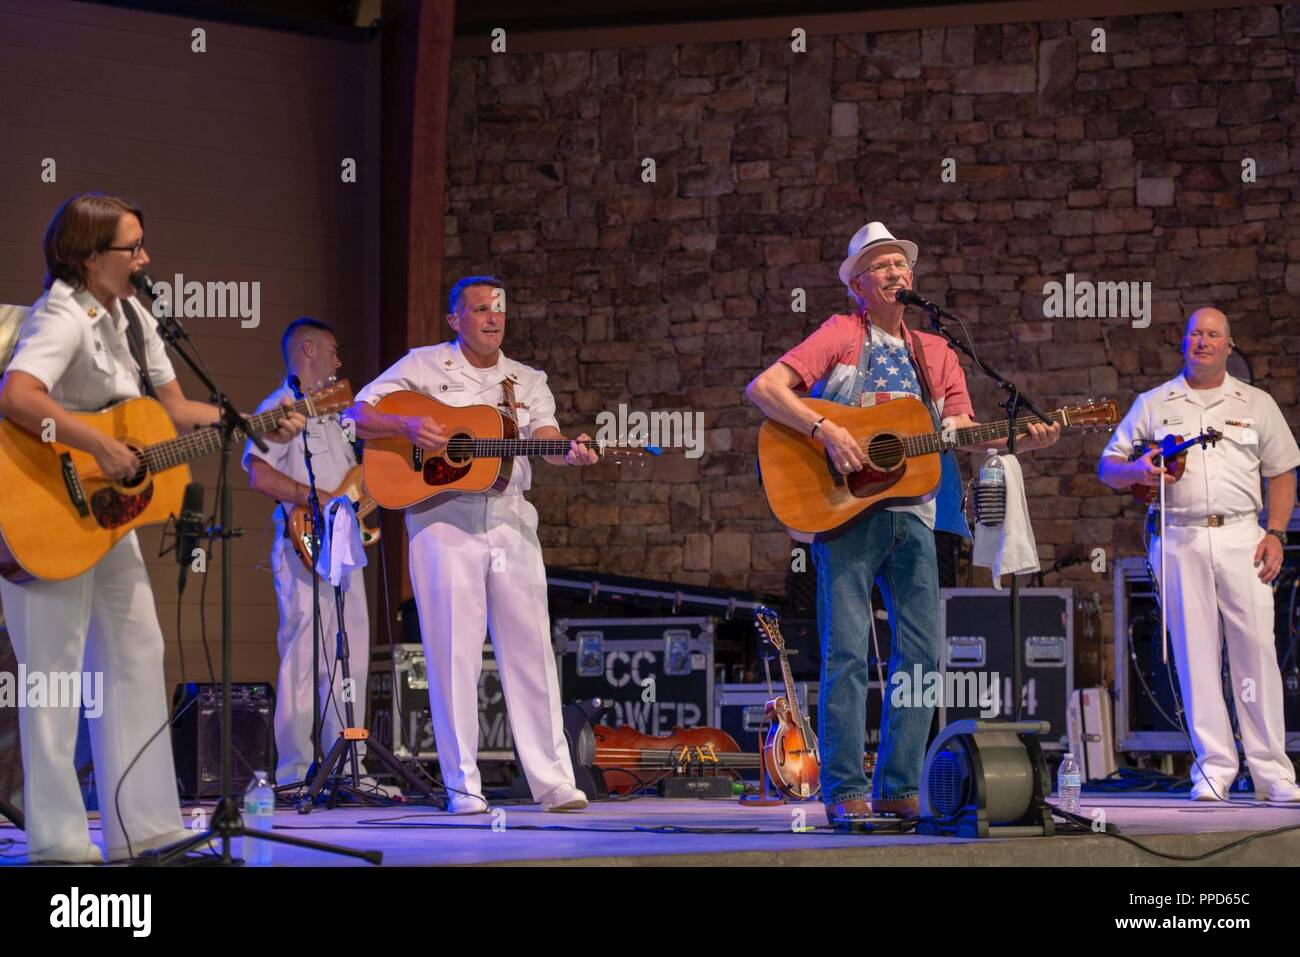 JOHNS CREEK, Ga. (Aug. 31, 2018) The U.S. Navy Band Country Current is joined onstage by a former band member, retired Master Chief Musician Jerry Gilmore, in a performance at the Mark Burkhalter Amphitheater at Newtown Park in Johns Creek, Georgia. Country Current is on a ten-day tour through Virginia, North Carolina, Georgia and Florida, entertaining audiences while connecting Americans to their Navy. - Stock Image